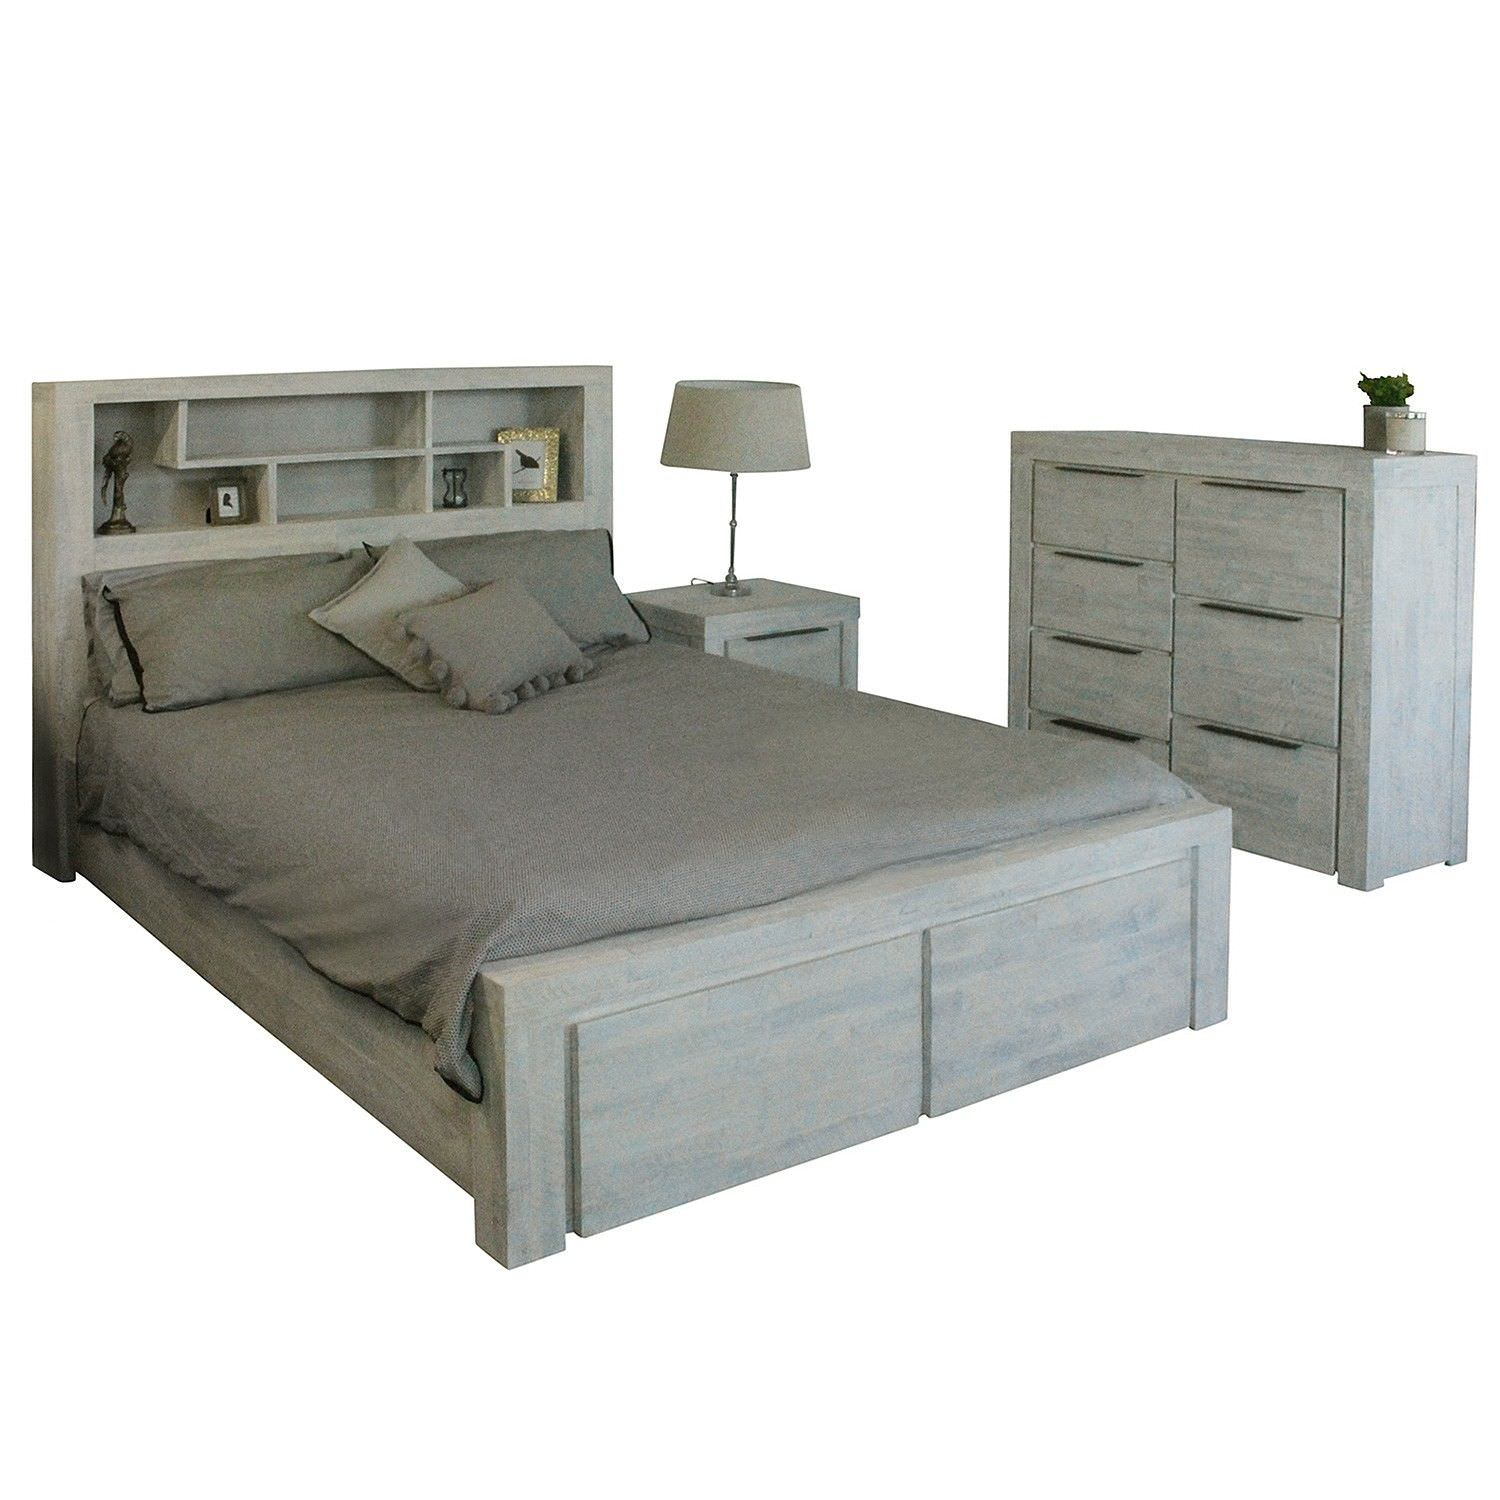 Romford 4 Piece Acacia Timber Bedroom Tallboy Suite with Bookcase Bed, Queen